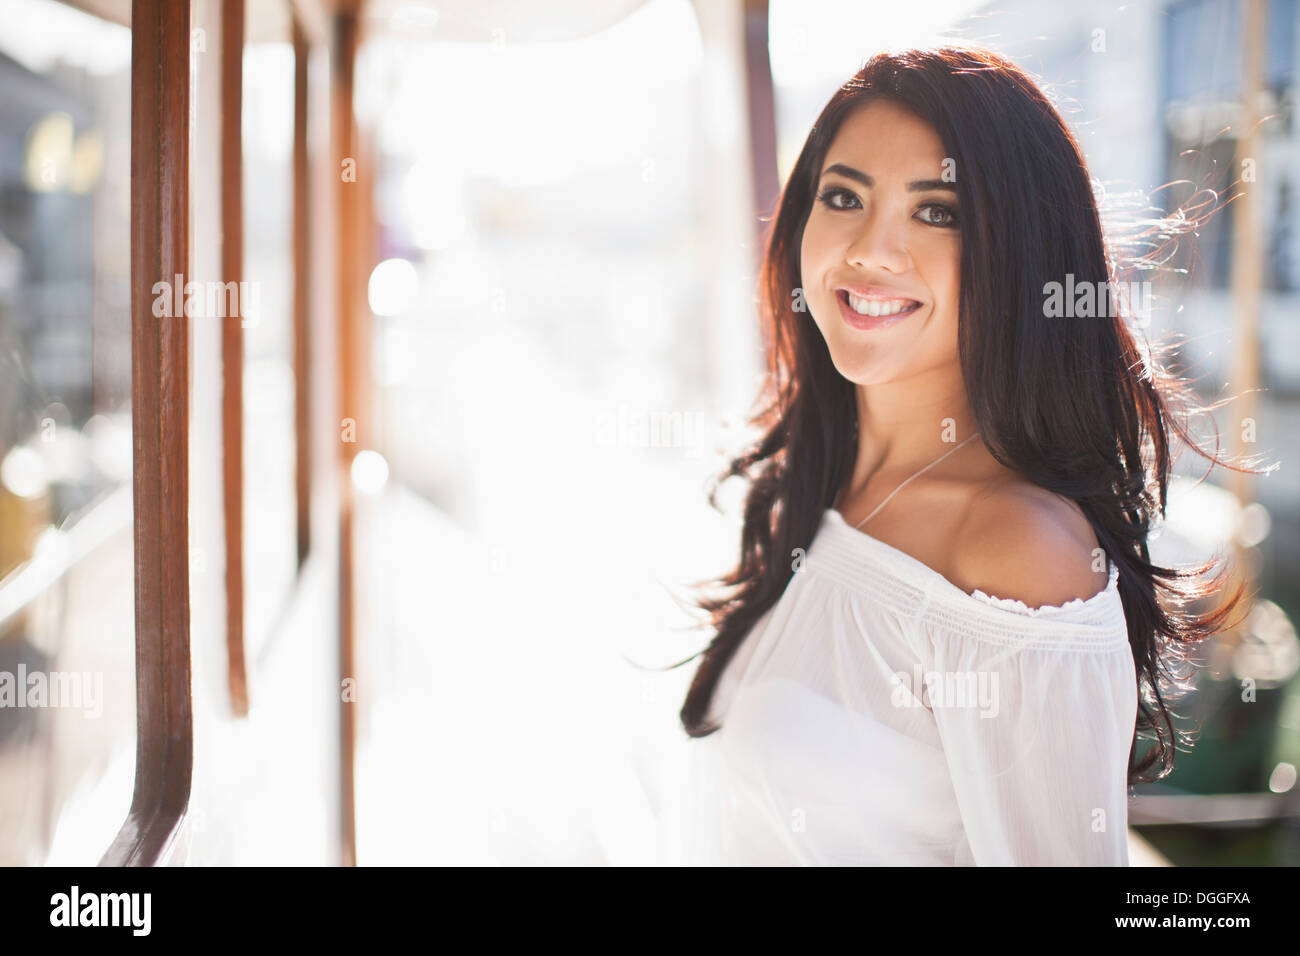 Portrait of young woman on yacht, San Francisco, California, USA Photo Stock